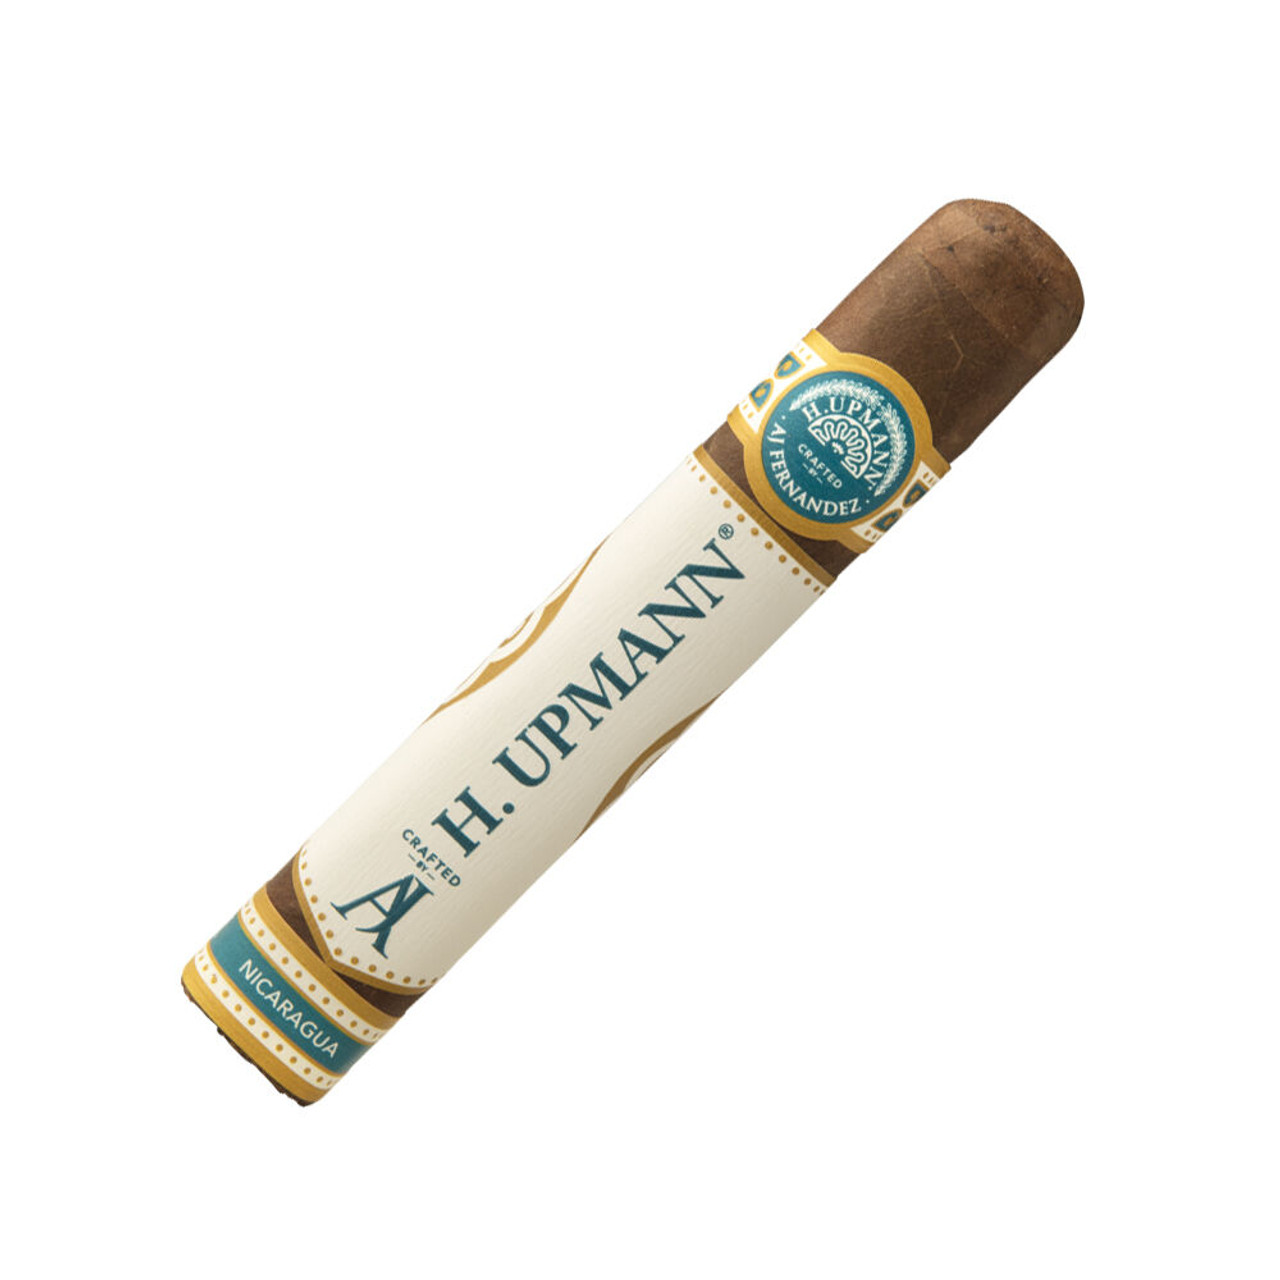 H. Upmann Crafted By AJ Fernandez Robusto Cigars - 5 x 54 (Box of 20)